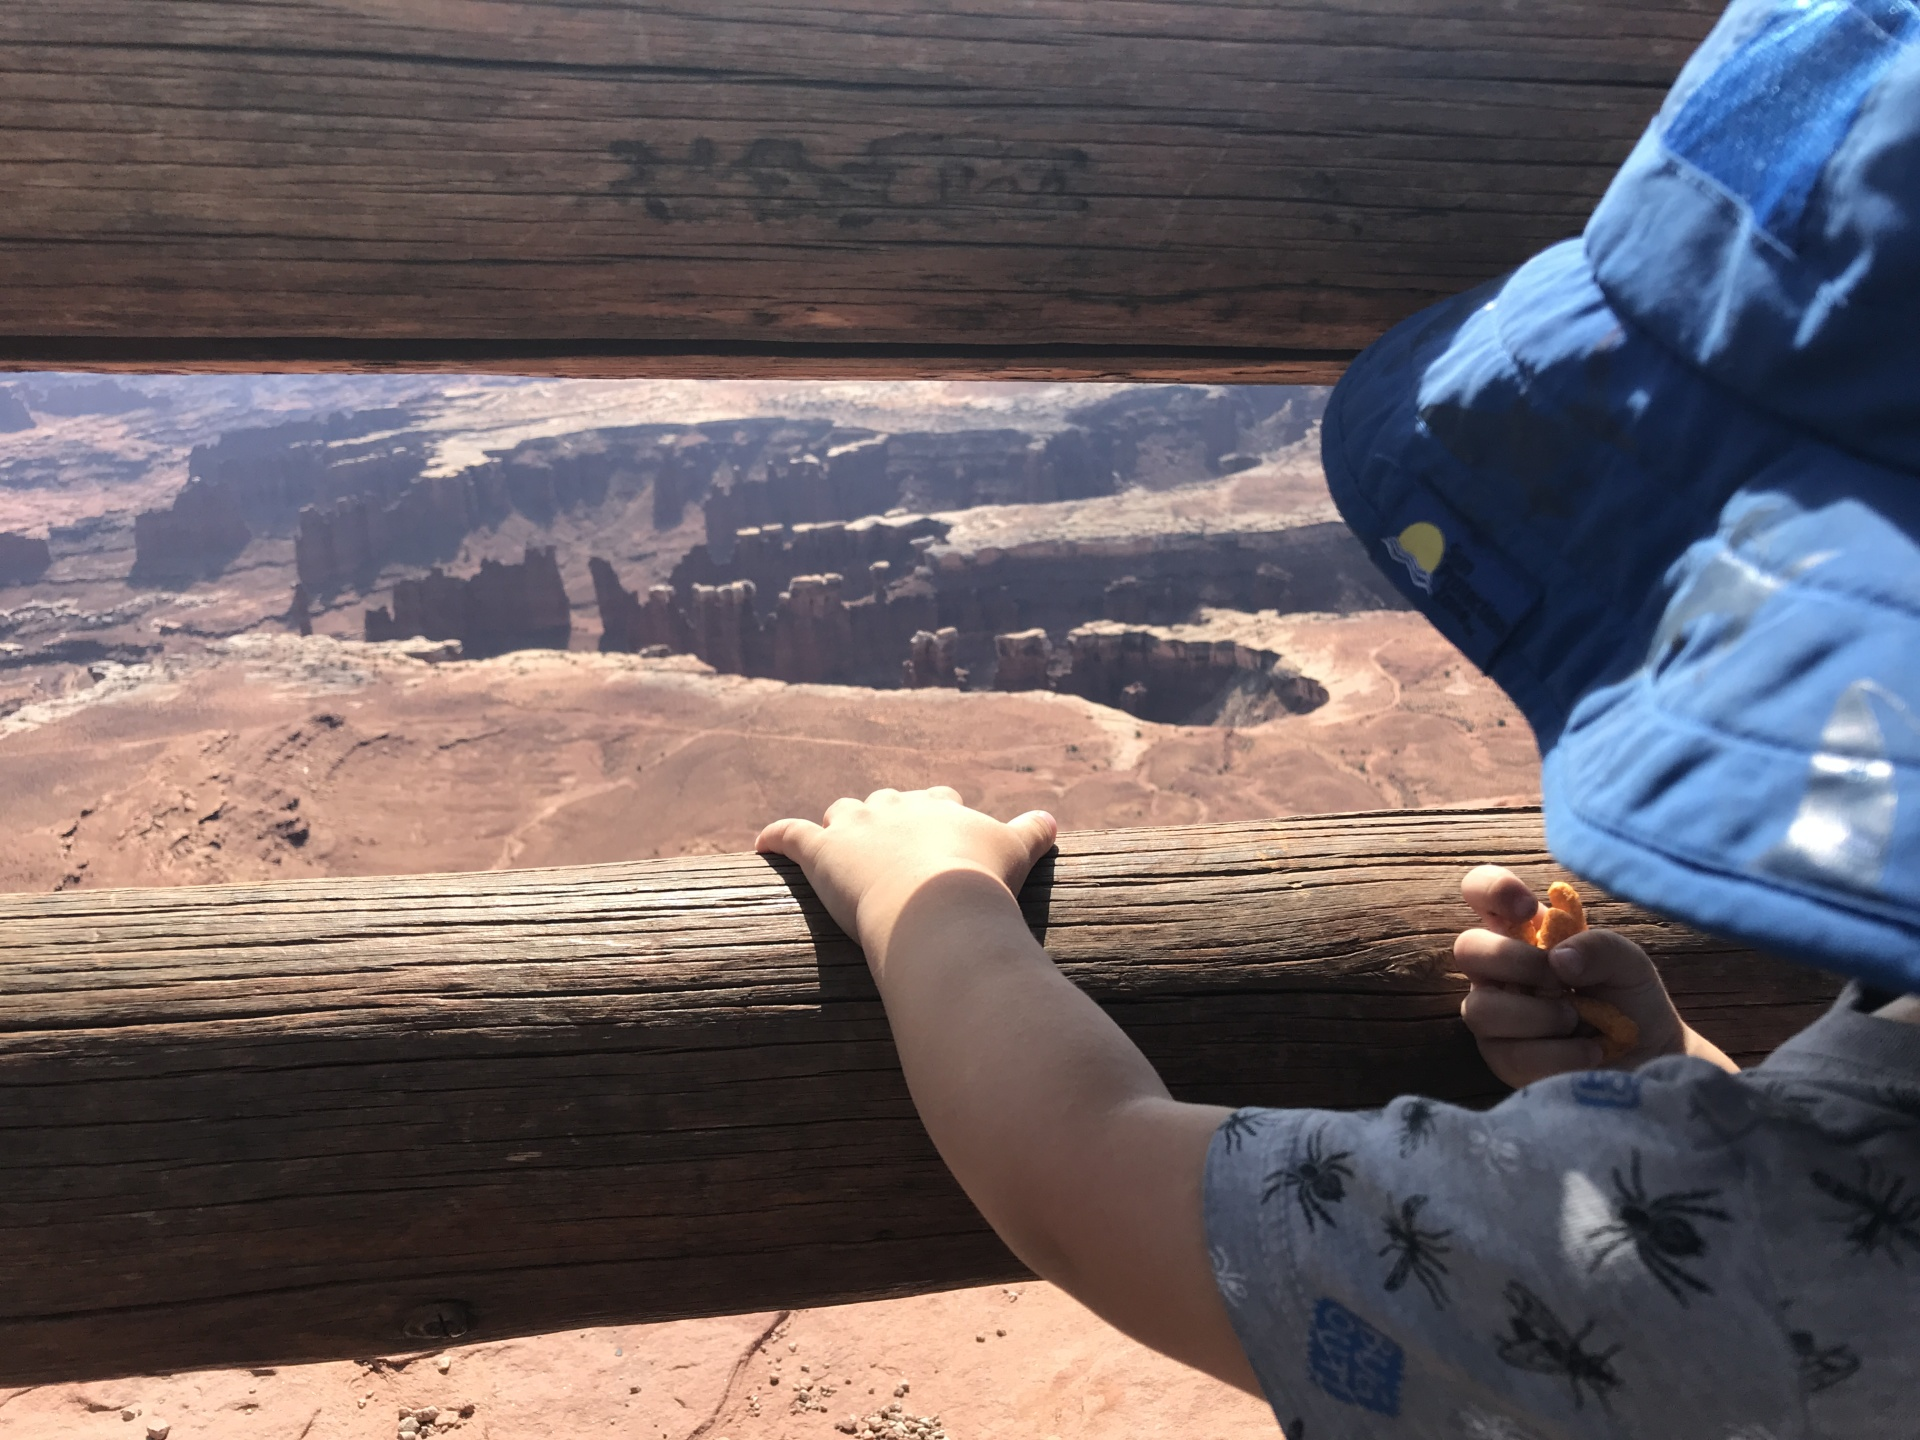 Roadschool Fieldtrip to Canyonlands National Park